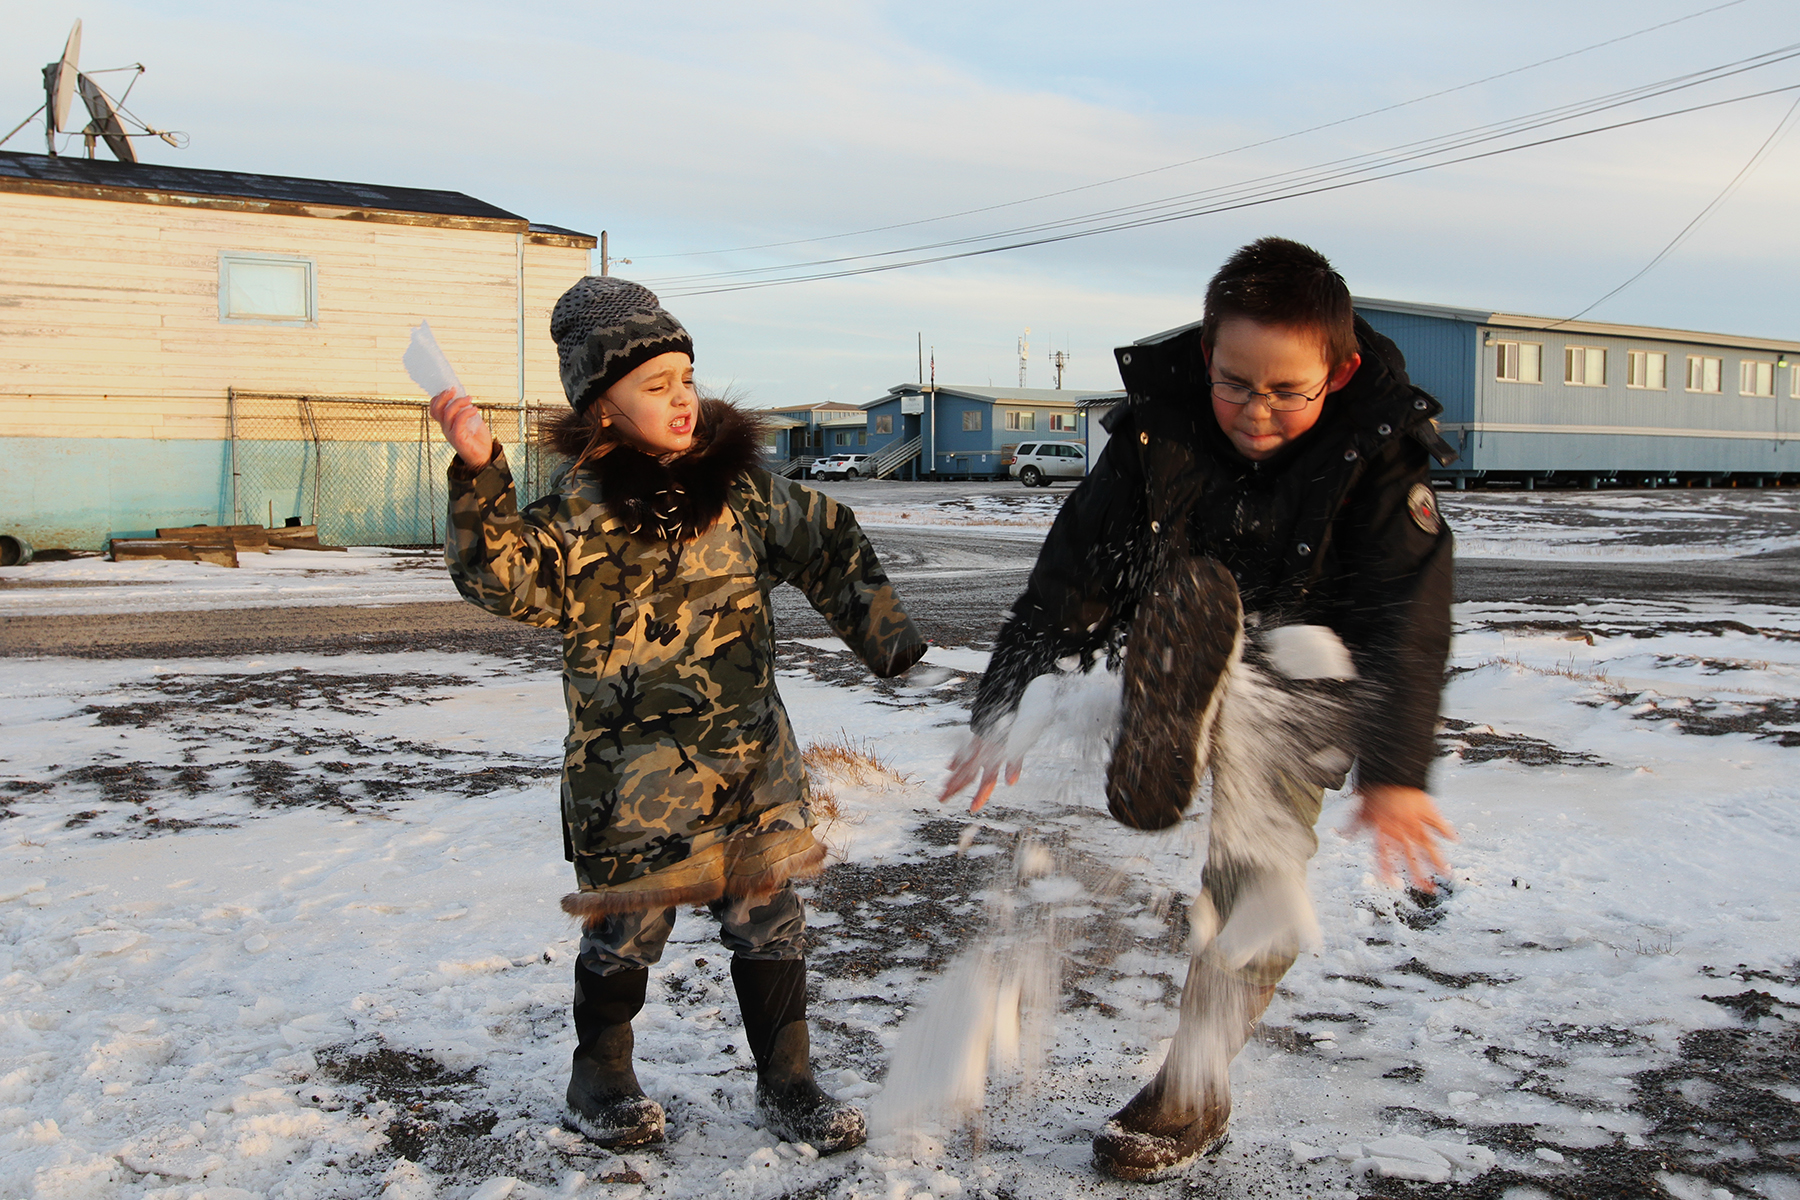 A storm covers the town in thick sheets of ice, and makes a good reason to play outside once it clears.